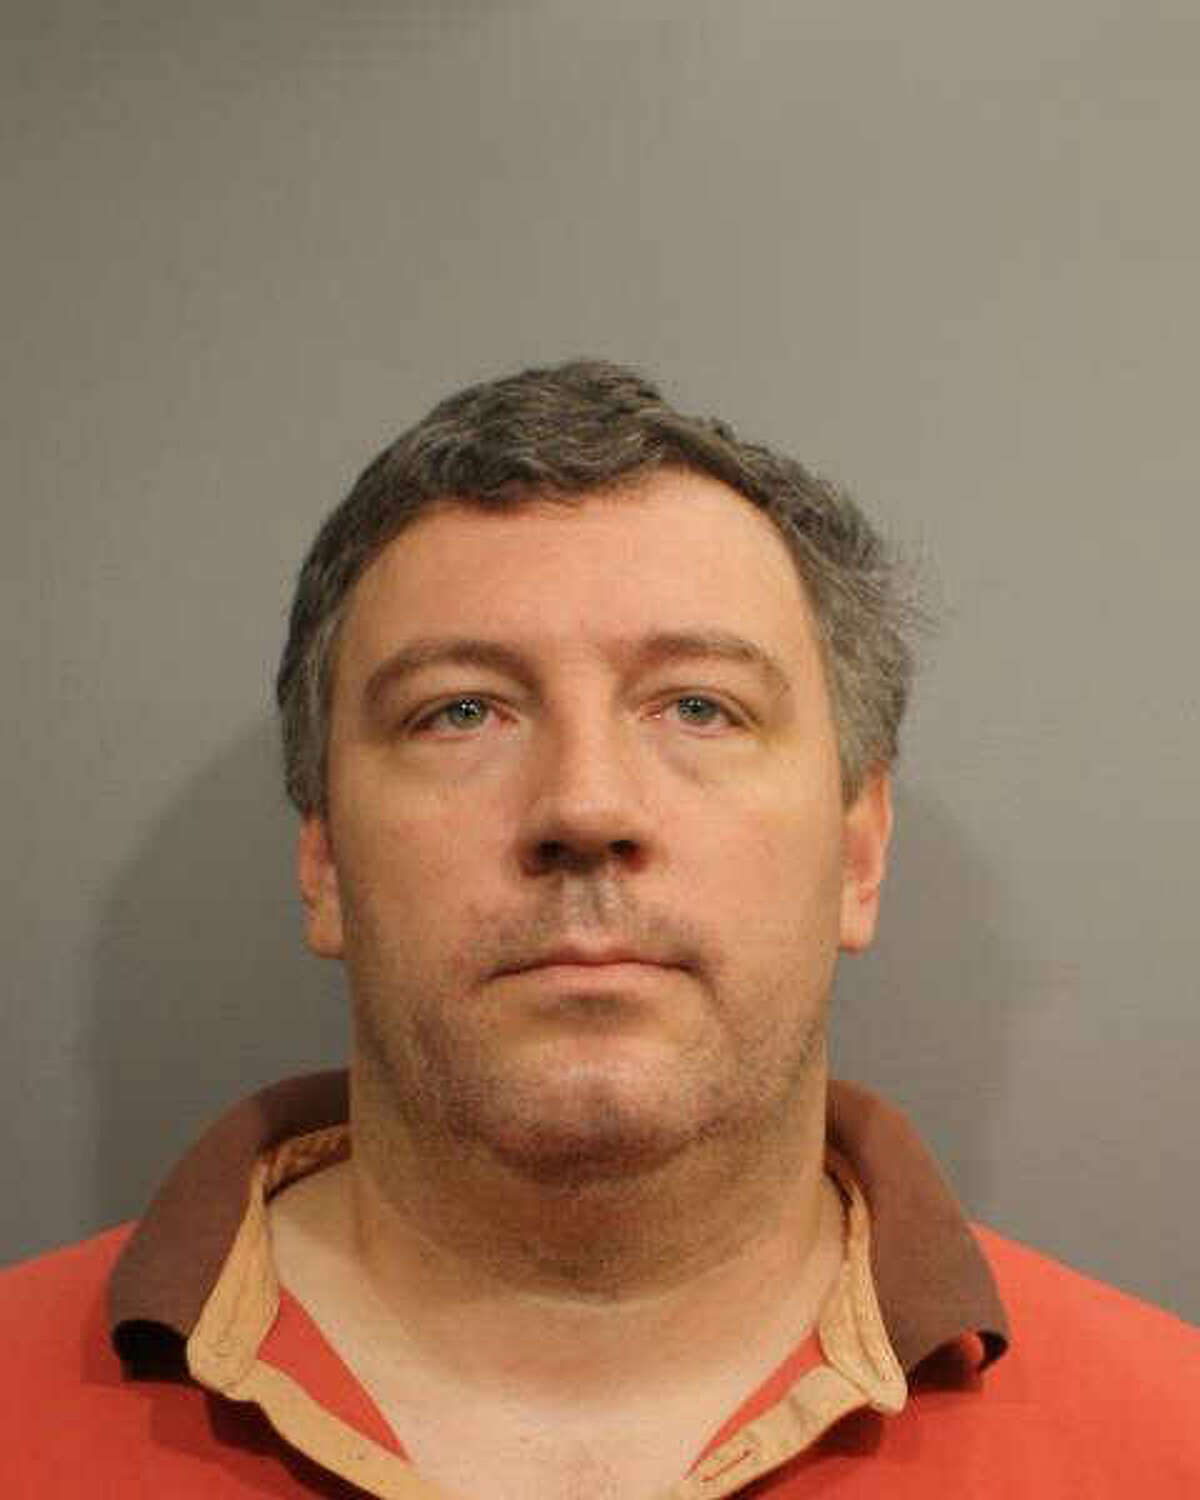 This photo provided by the Wilton Police Department shows James Burleson. Burleson was arrestedlast week for allegedly threatening to shoot officers after calling police to report his car was stolen.